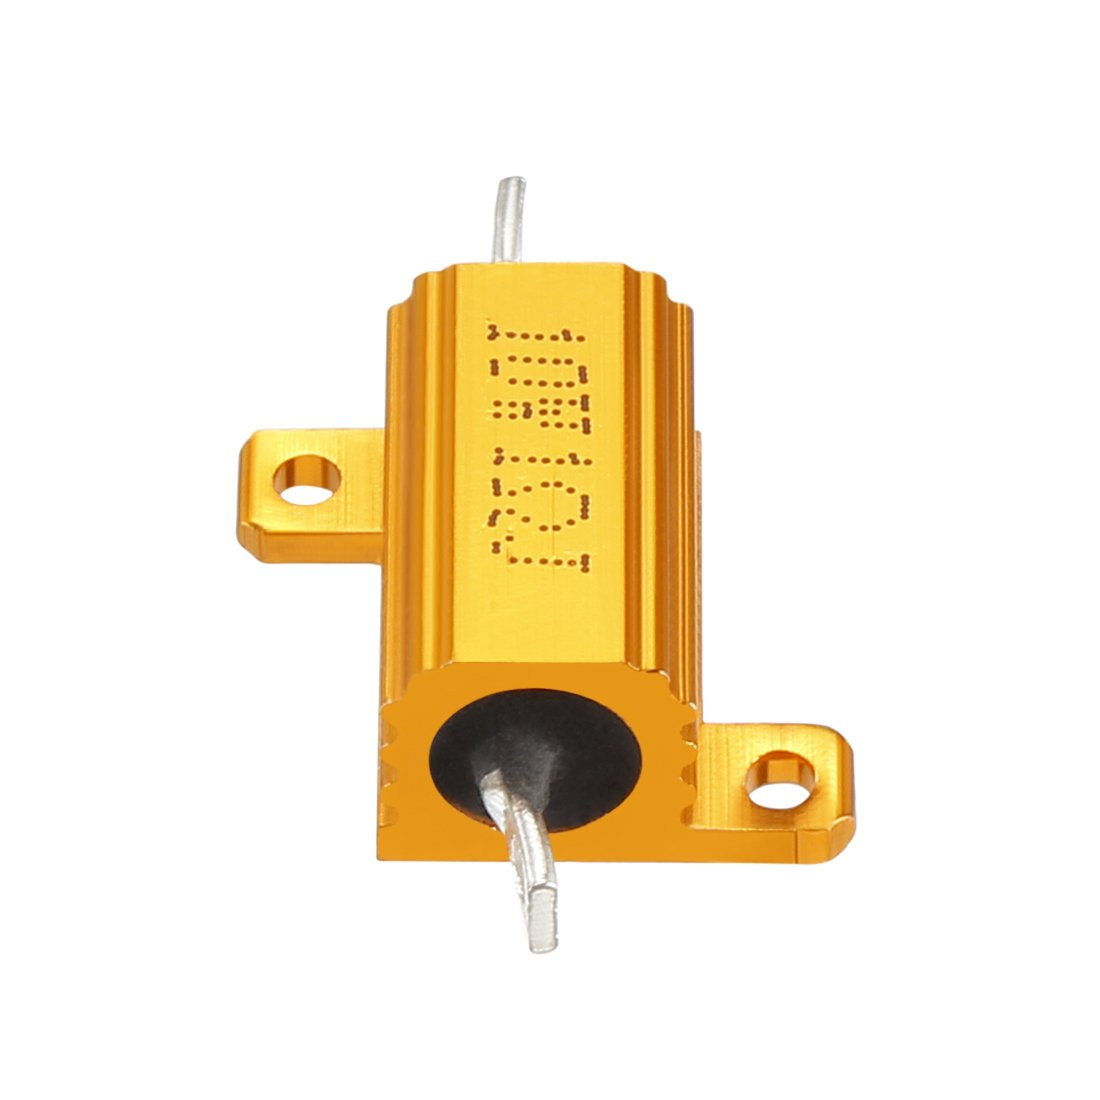 Pack of 100 RT0603BRB071K5L RES SMD 1.5K OHM 0.1/% 1//10W 0603